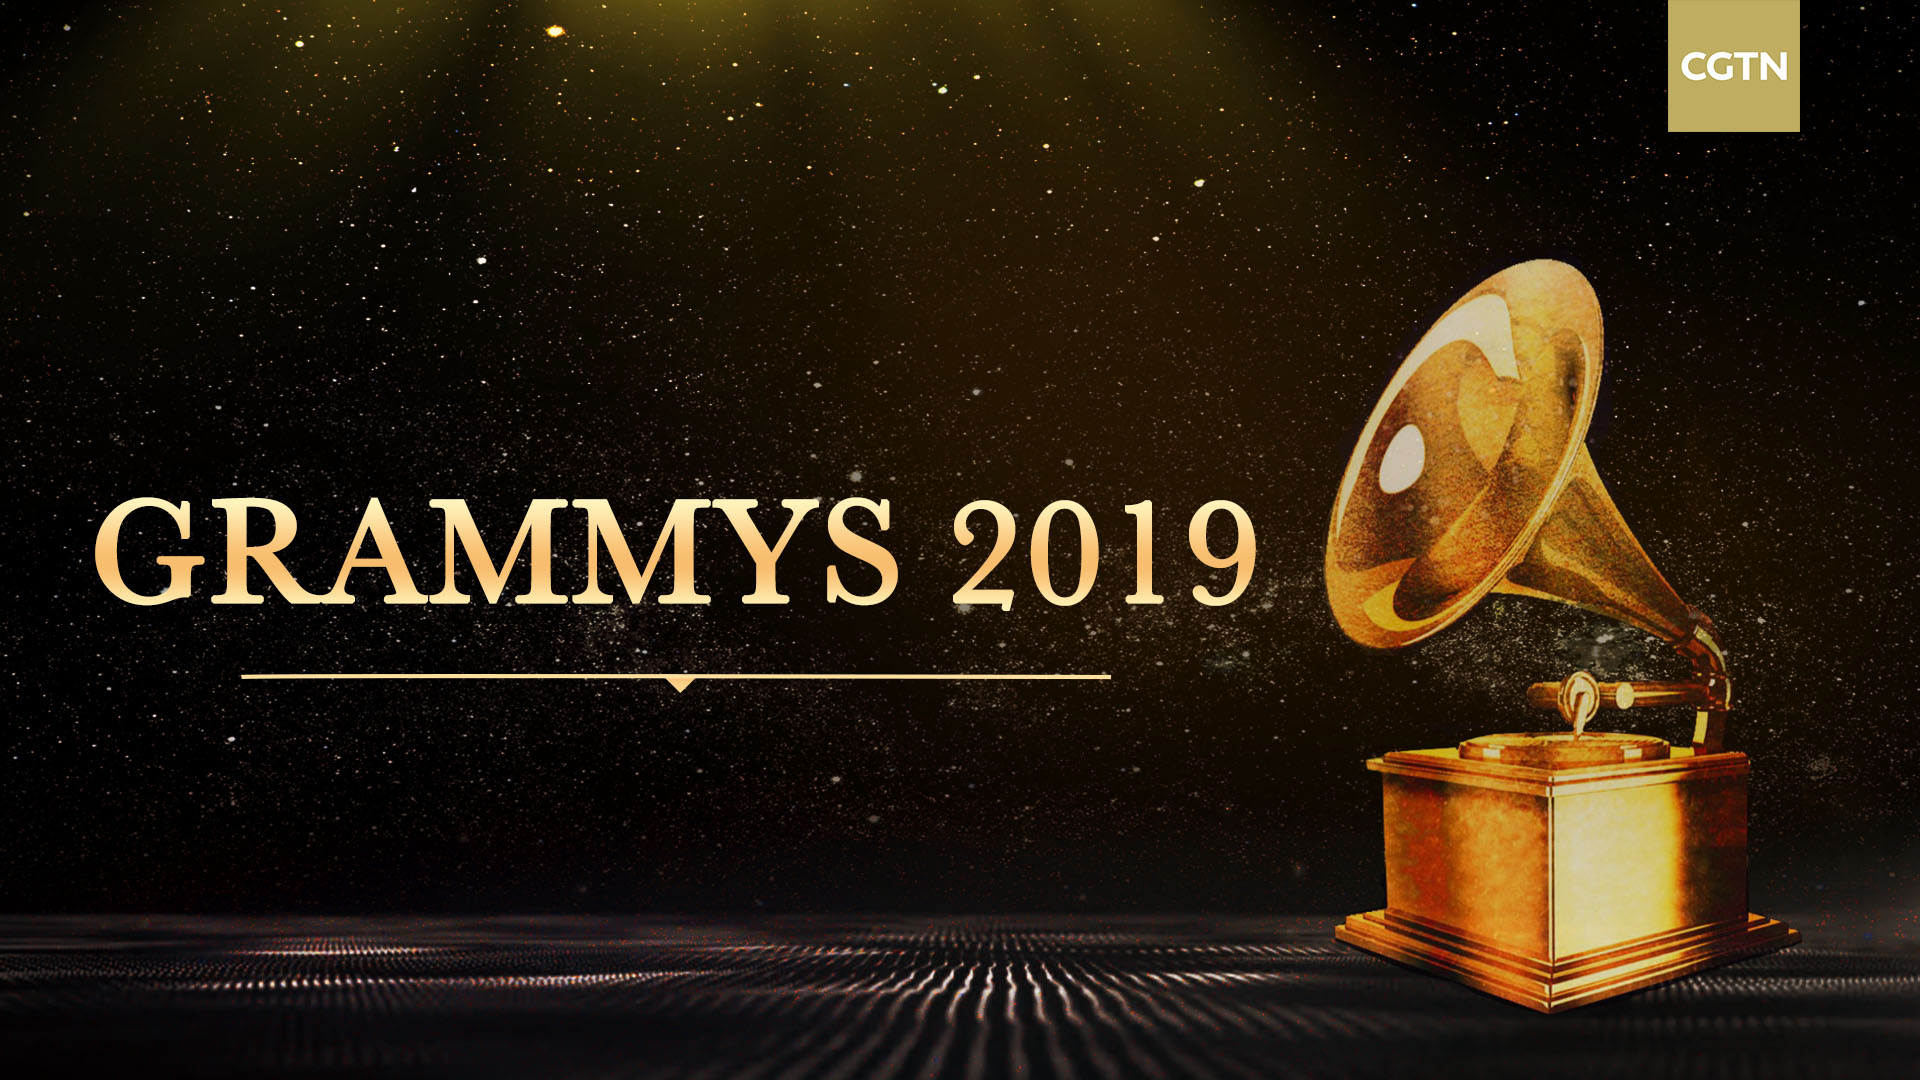 The Best Grammys Awards Logo